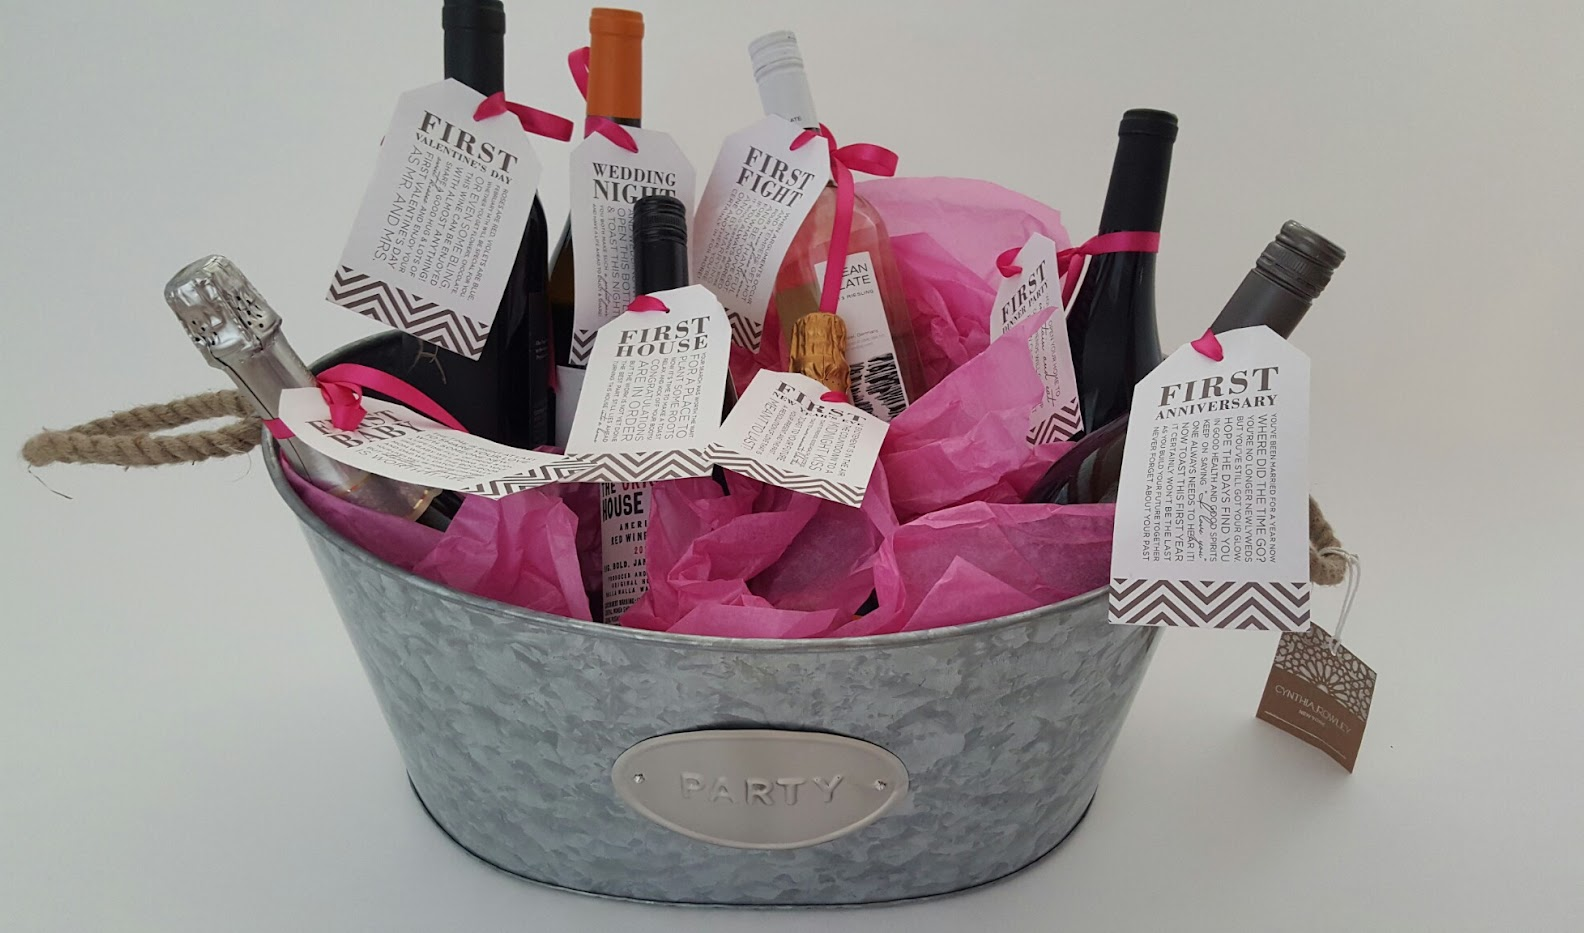 Wedding Gift Basket Ideas For Bride And Groom : Bridal Shower Gift DIY to Try: A Basket of ?Firsts? for the Bride ...